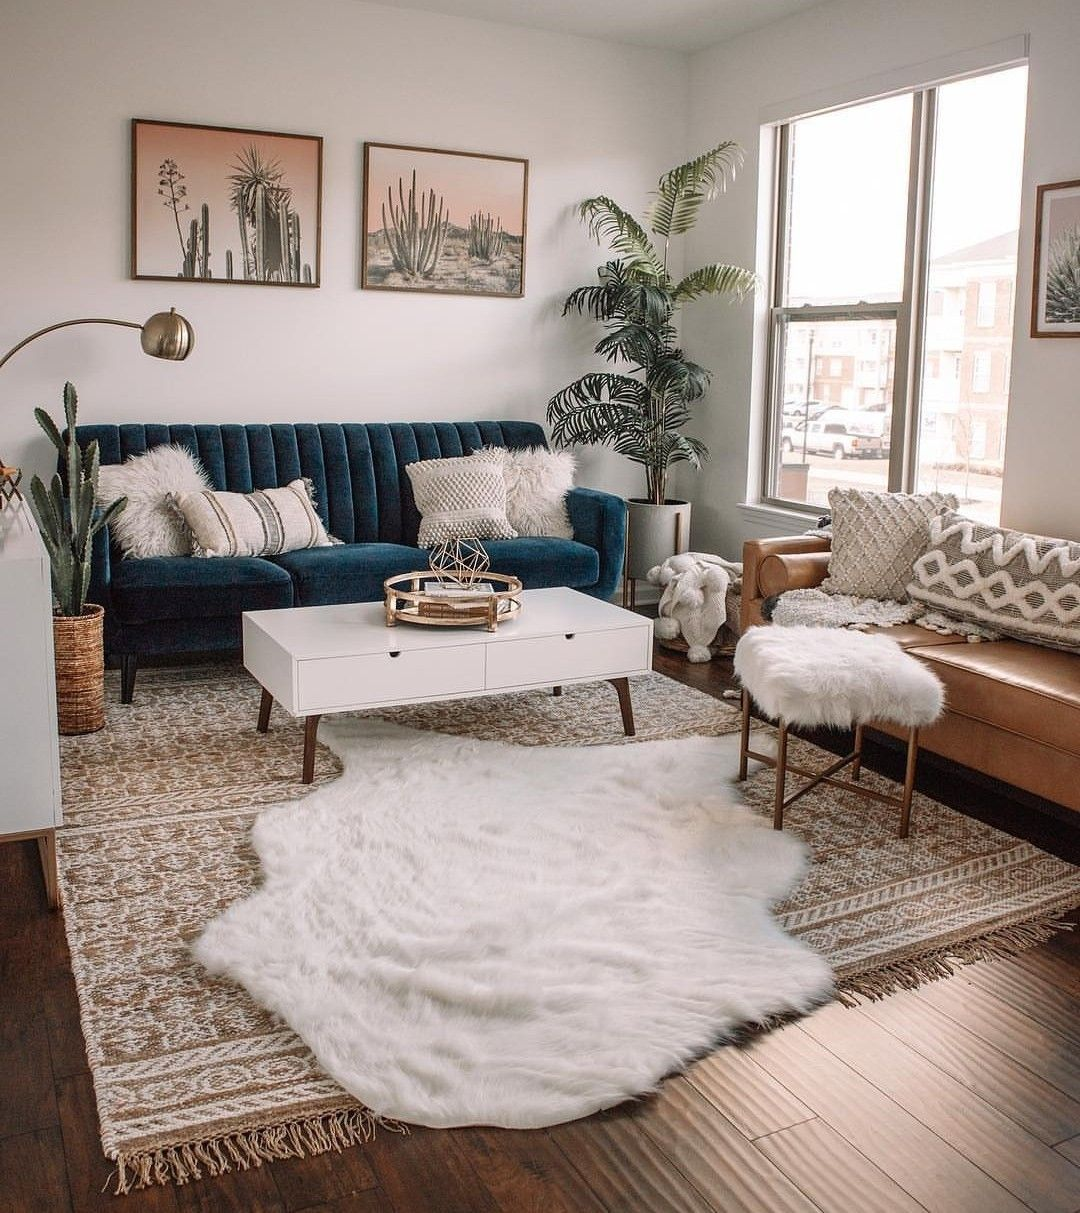 Small Mid Century Modern Living Room With Blue Velvet And Brown Leather Sofas And Houseplan Living Room Decor Apartment Apartment Living Room Comfy Living Room